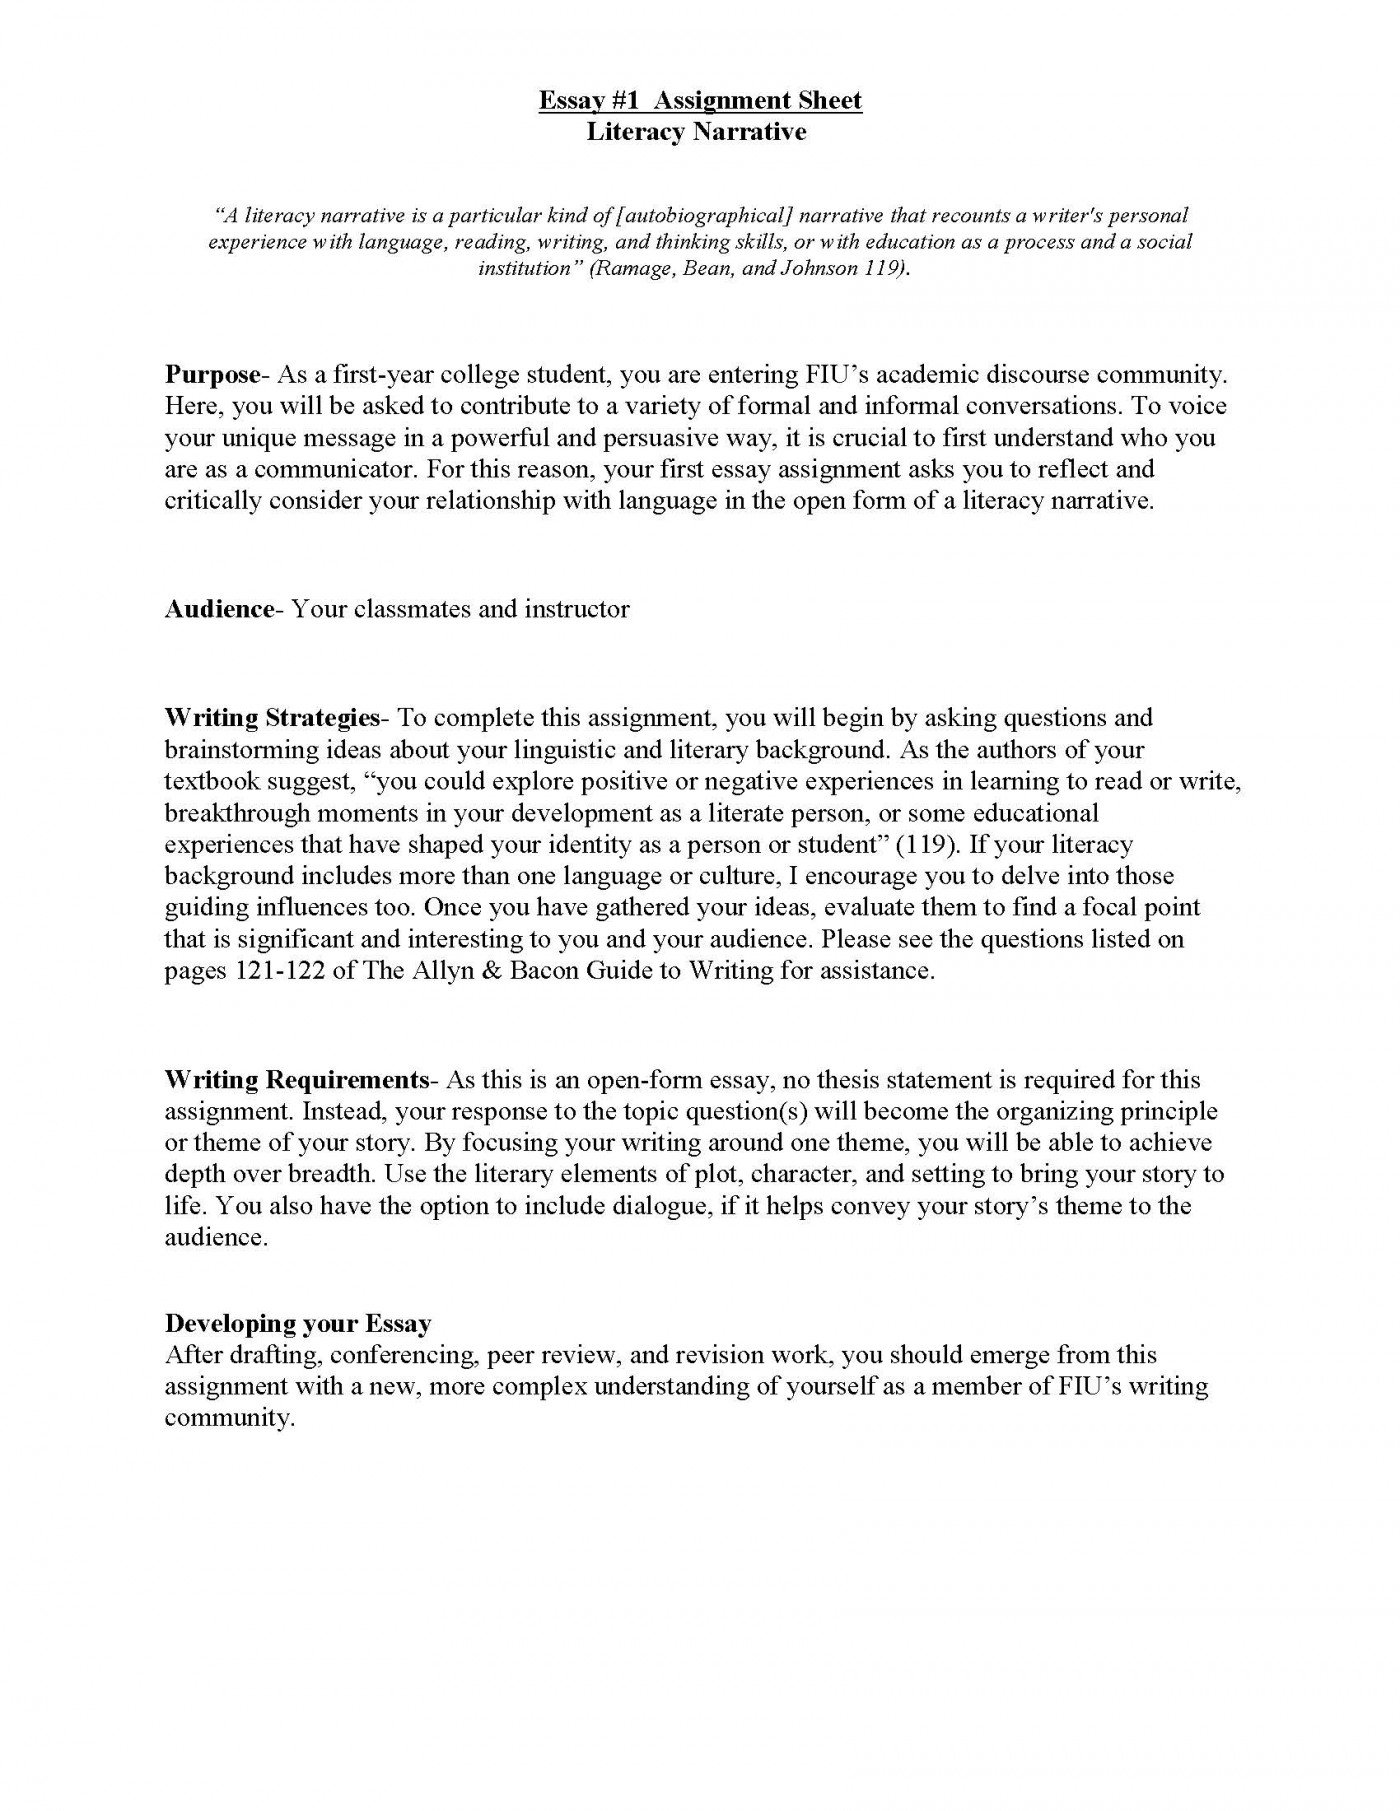 021 Essay Example Literacy Narrative Unit Assignment Spring 2012 Page 1 Essays Top Examples Free Samples Of Personal For Colleges 1400